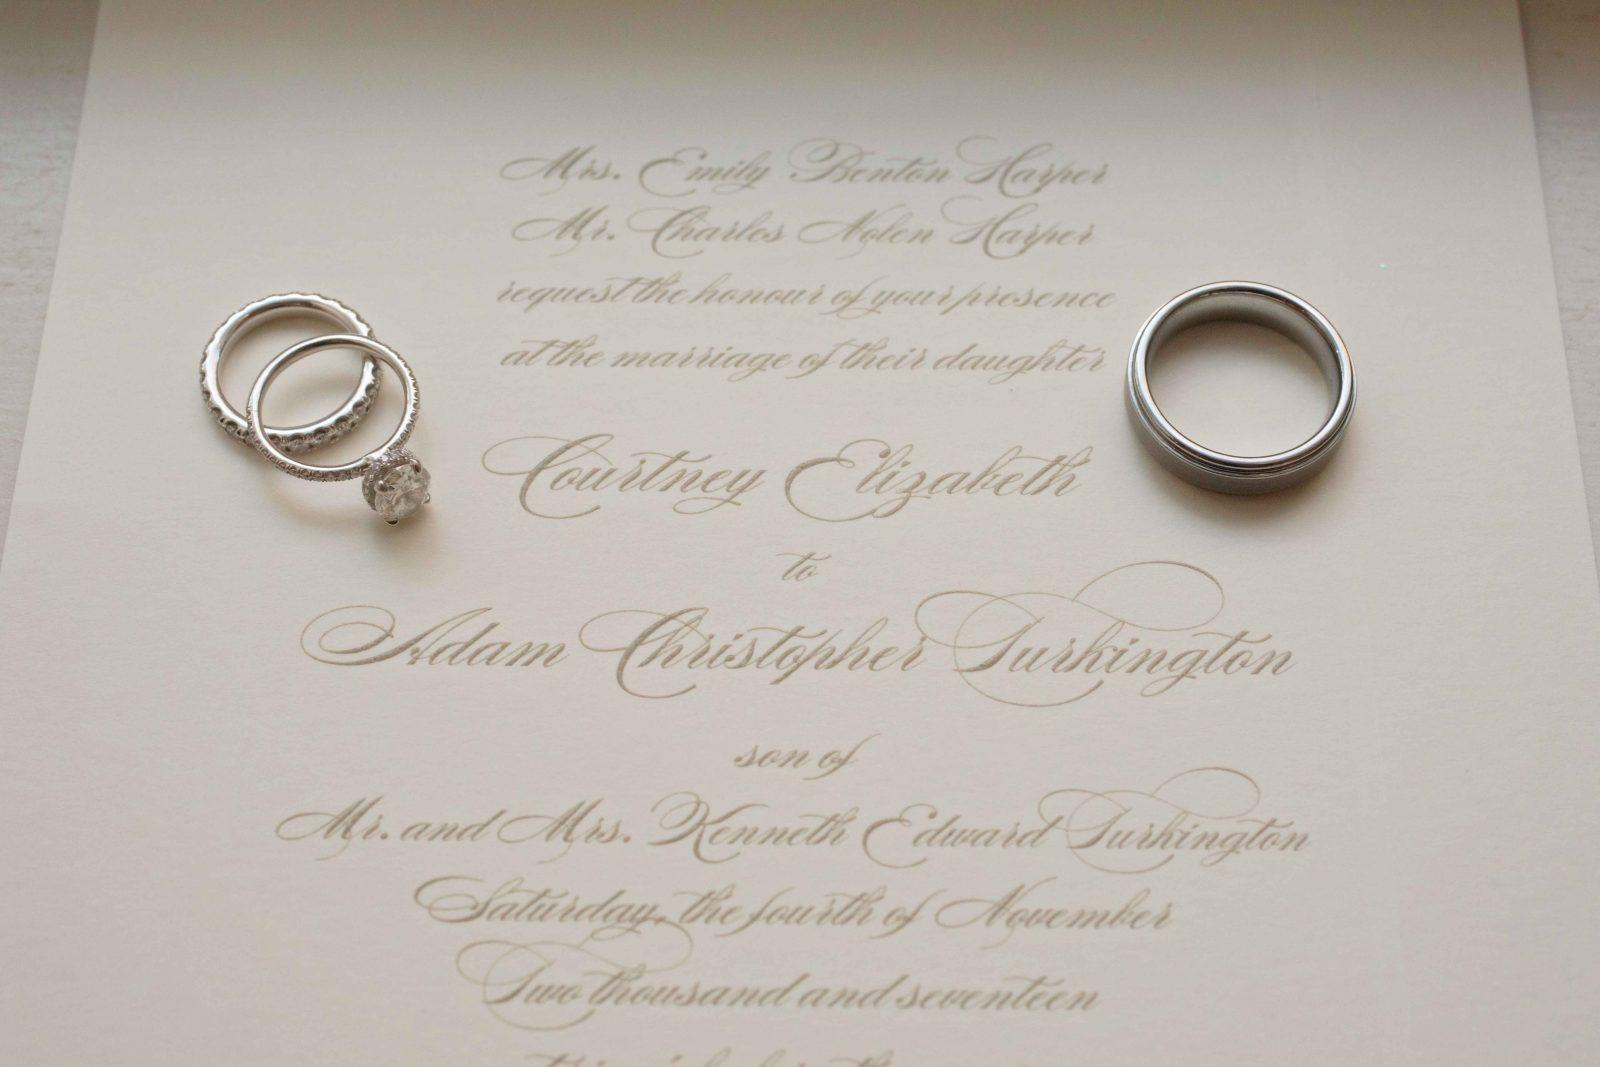 Wedding of Courtney Harper and Adam Turkington